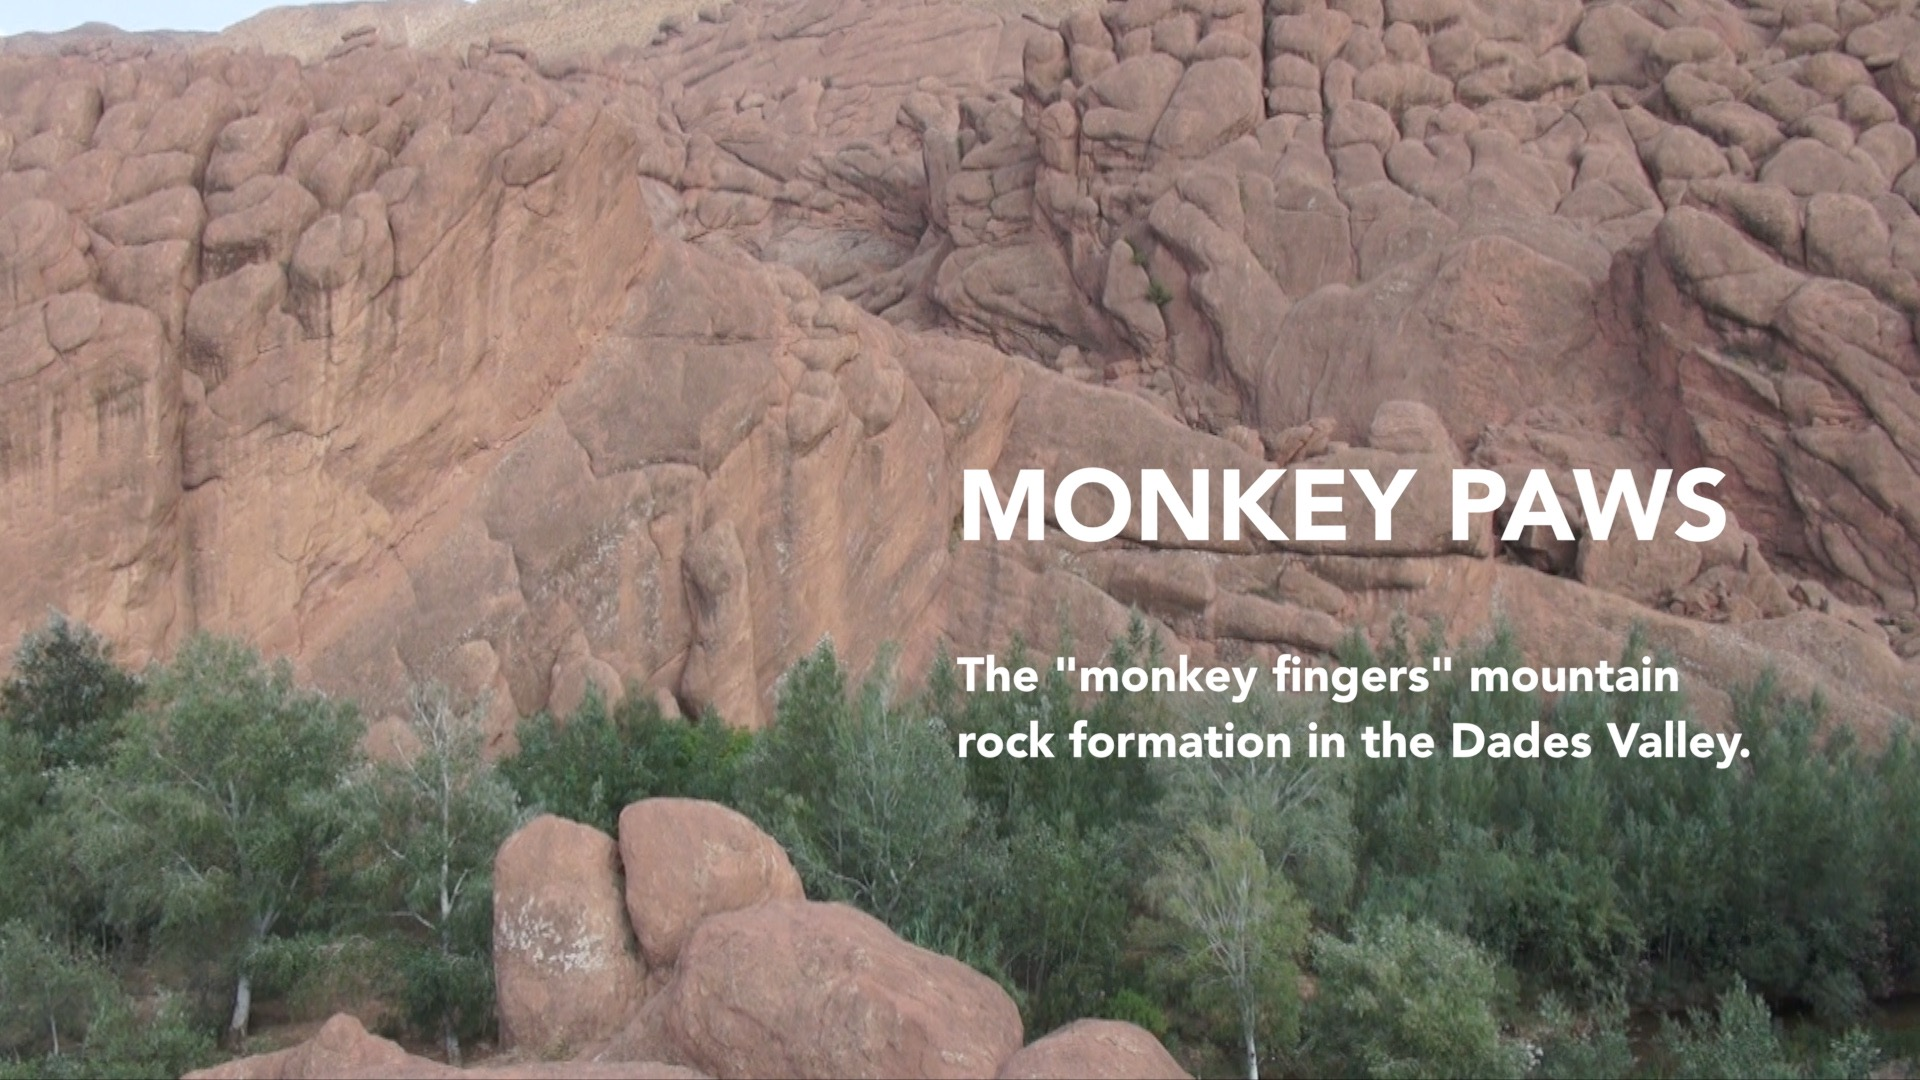 MONKEY PAWS MOUNTAINS